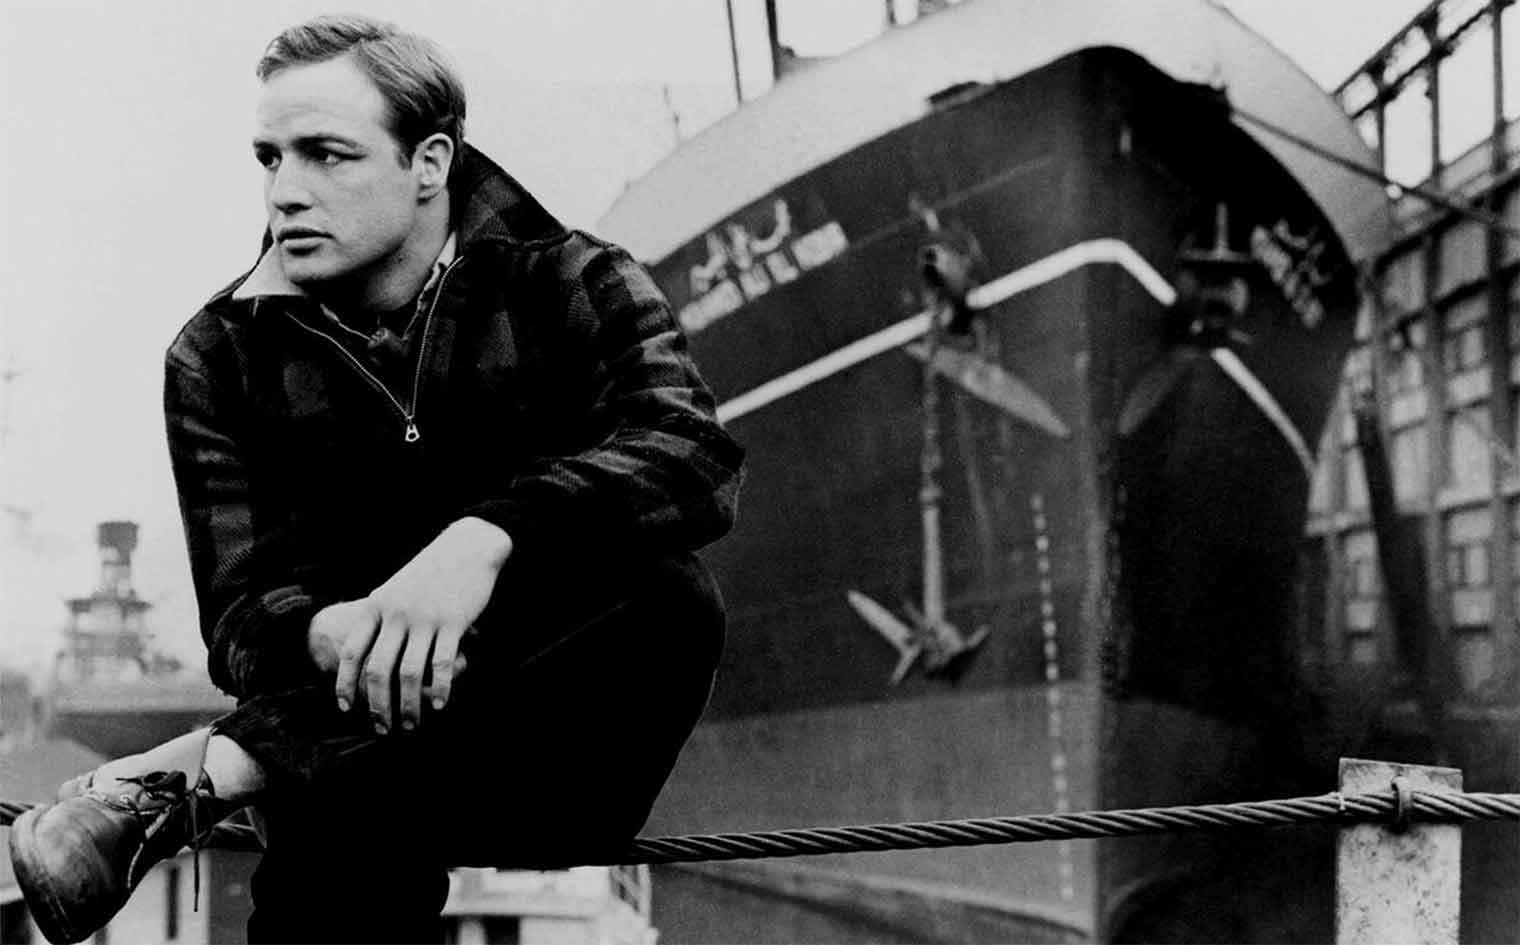 ON THE WATERFRONT & THE WILD ONE